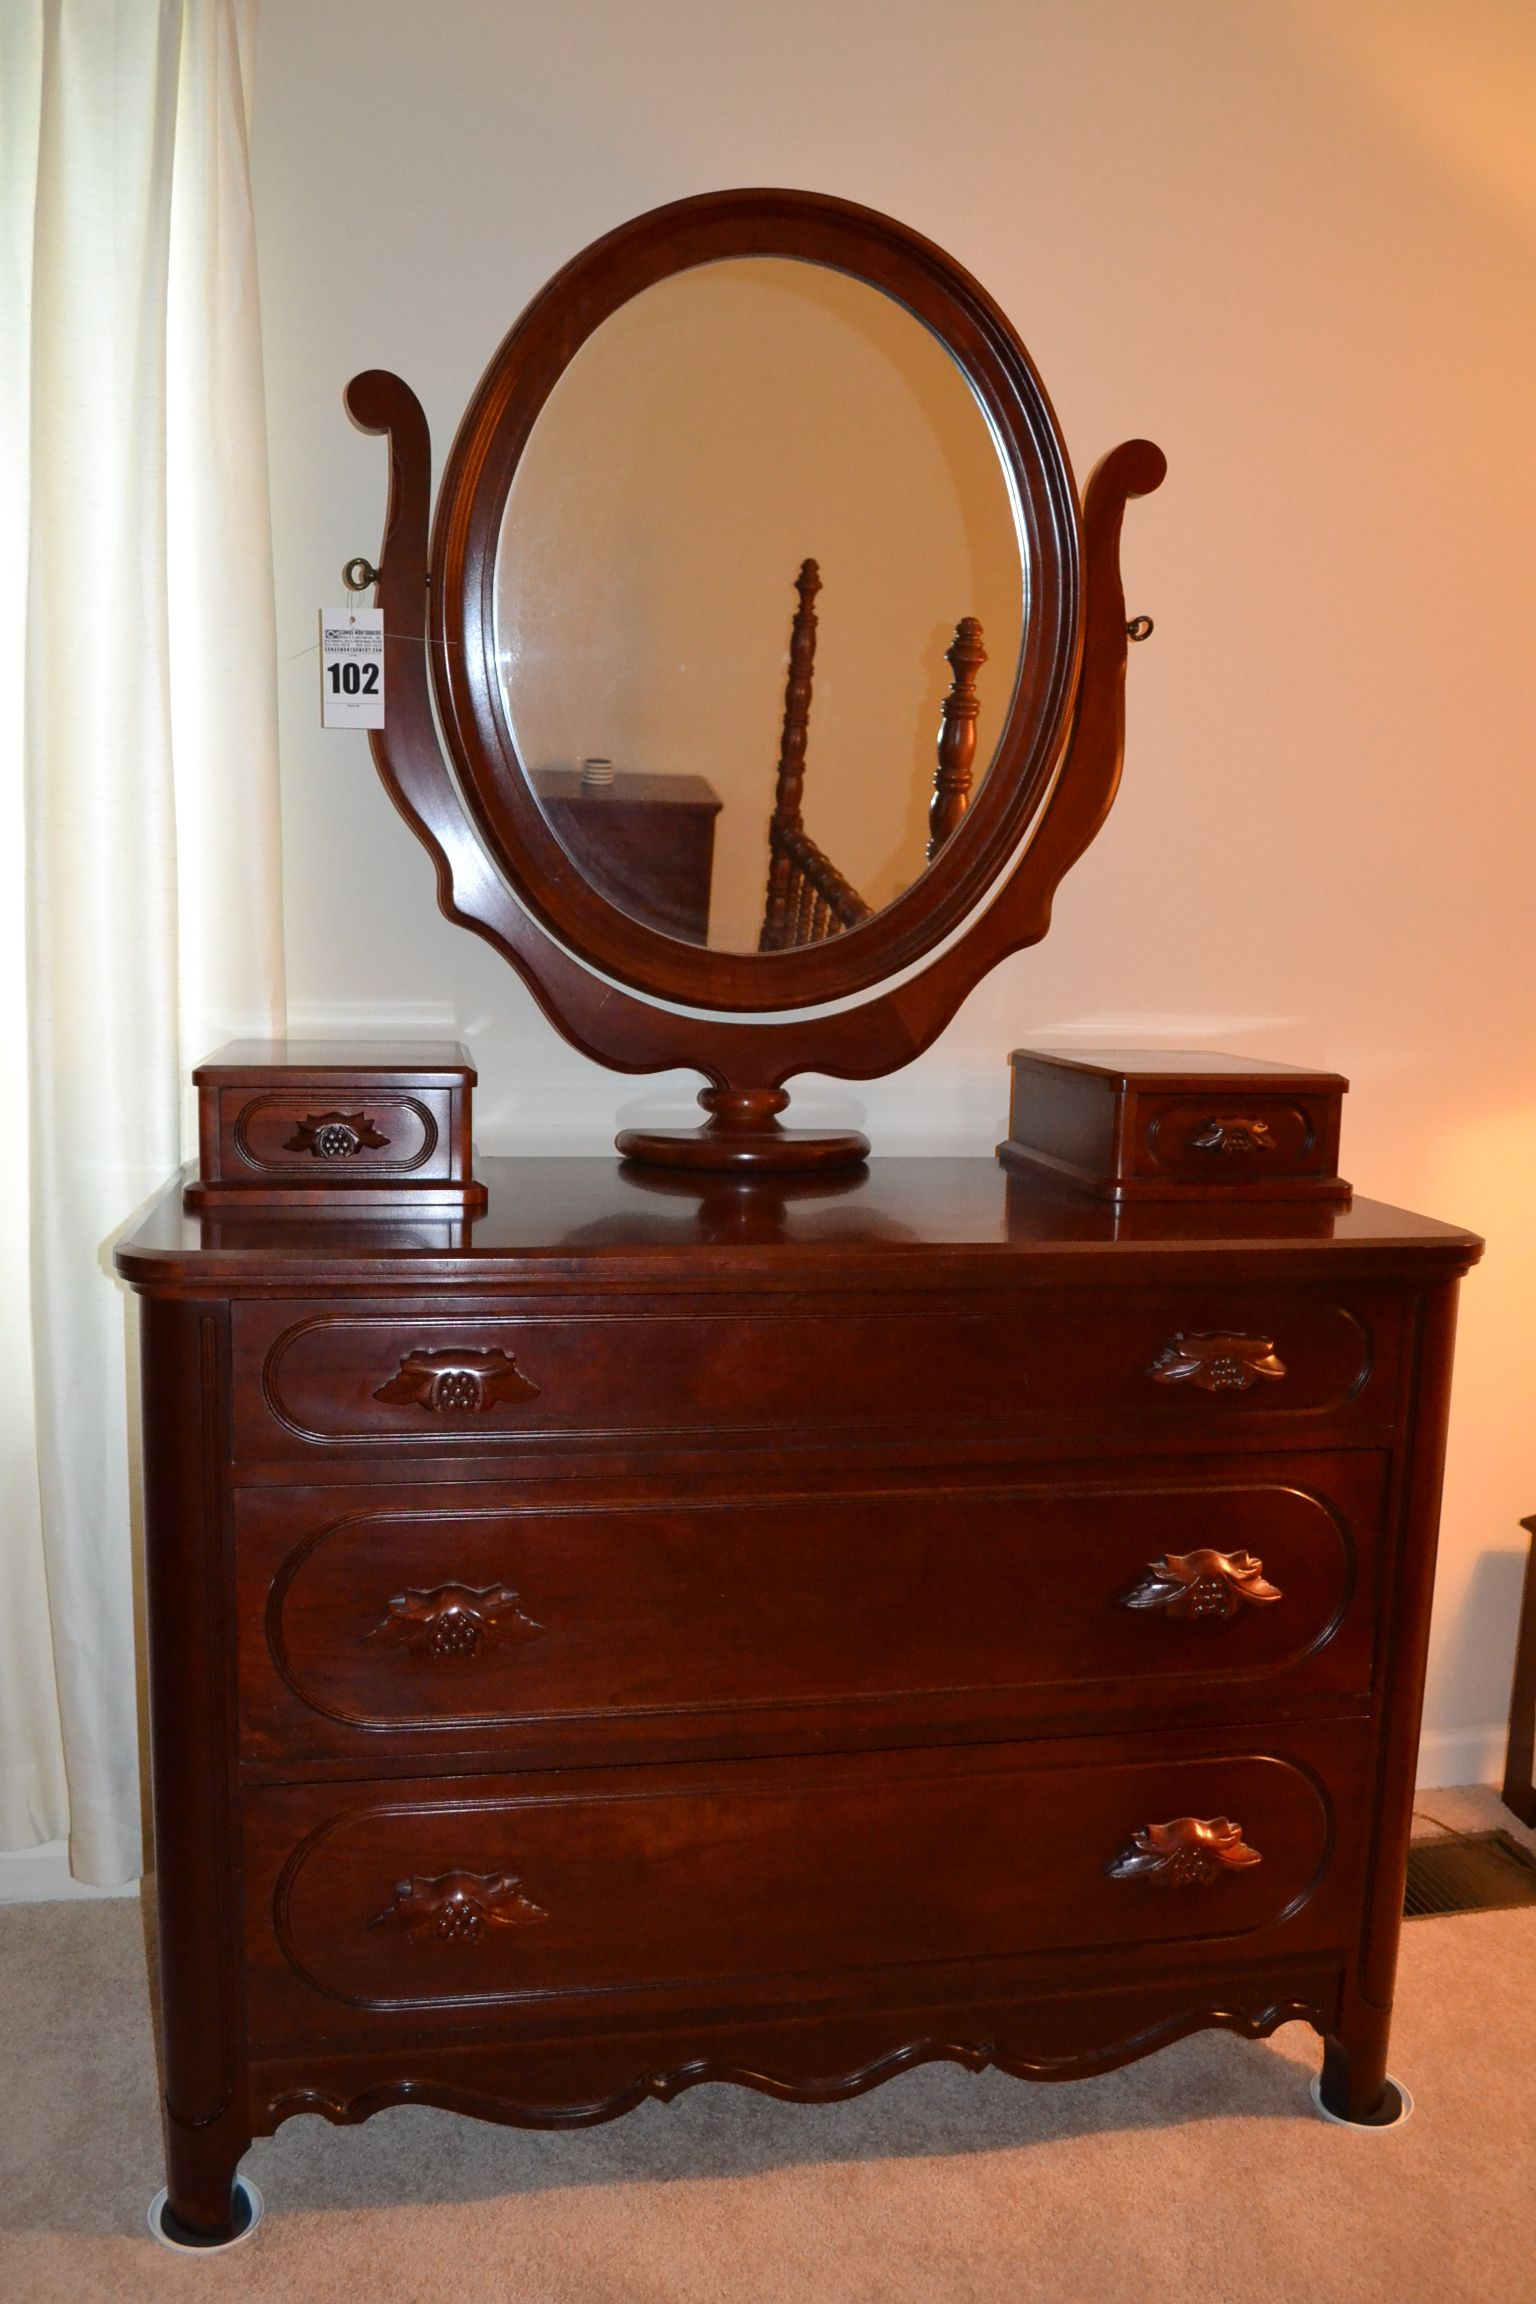 The Original Lillian Russell Collection Mirrored Dresser by Davis ...